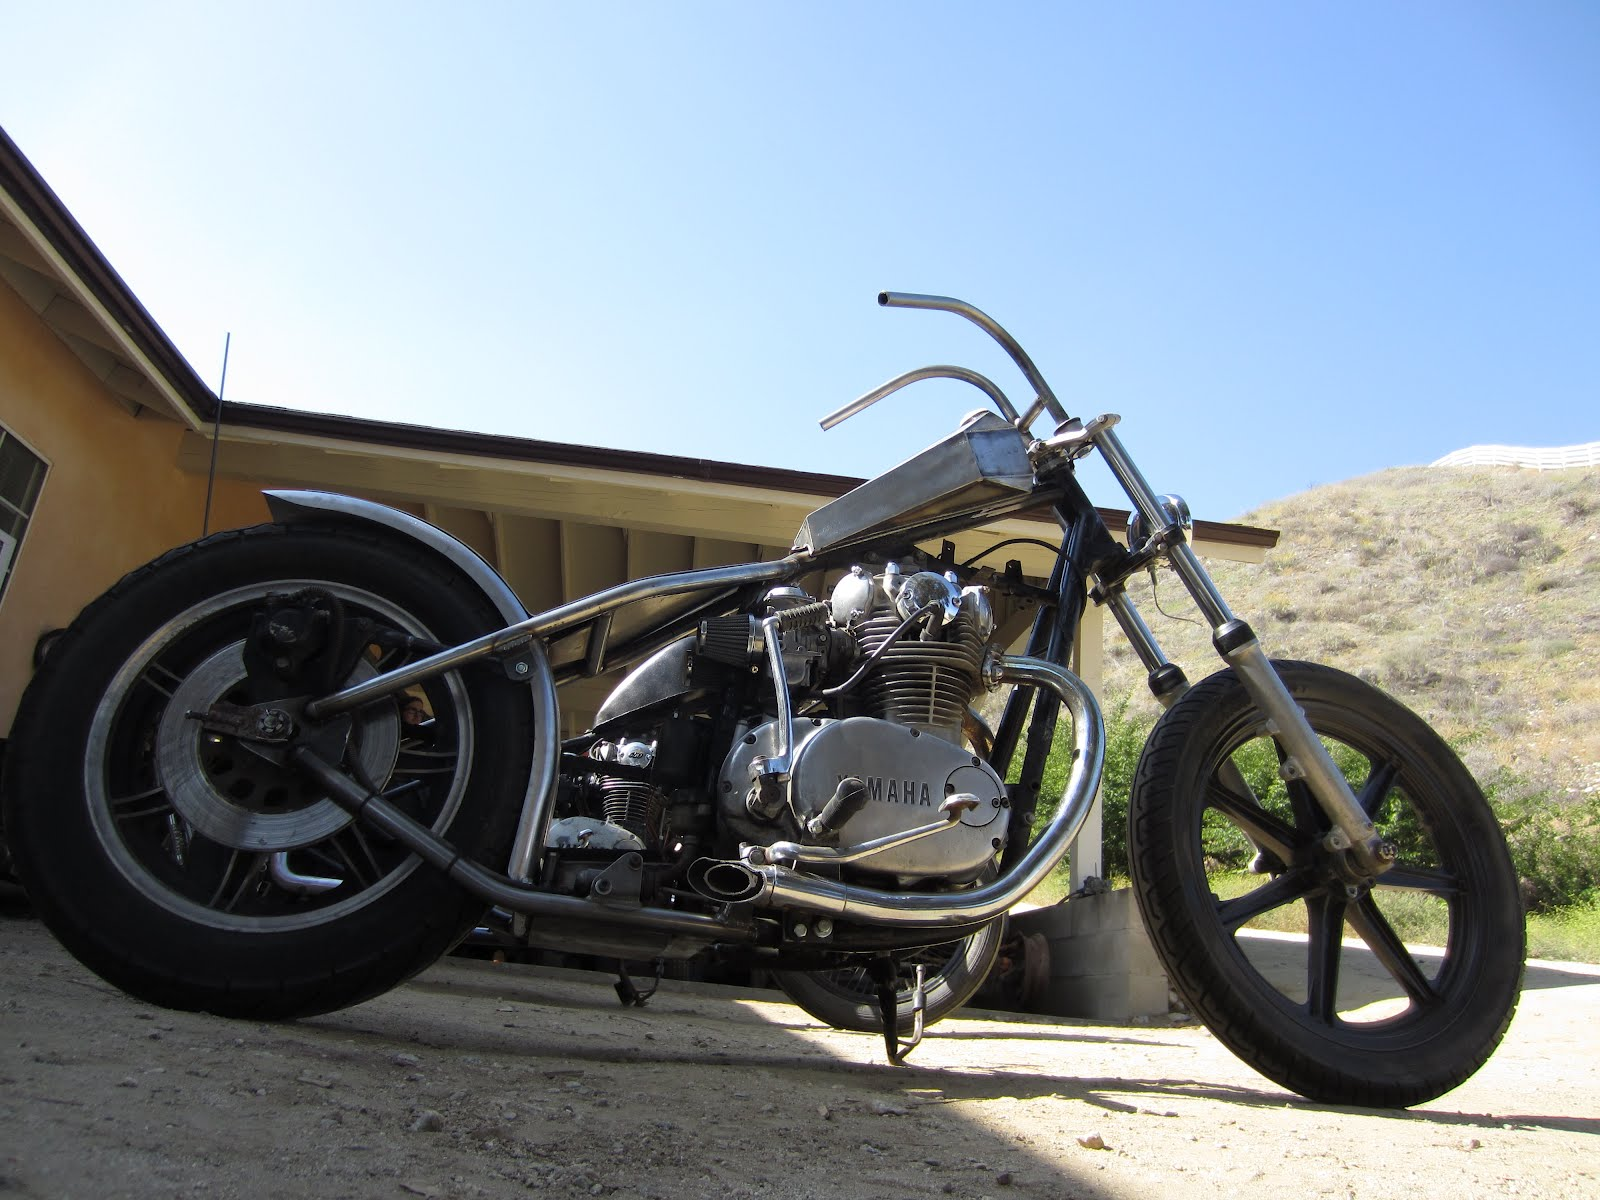 small resolution of suzuki gs450 bobber wiring diagram 7 suzuki 450 gs carbs suzuki gs450 bobber wiring diagram